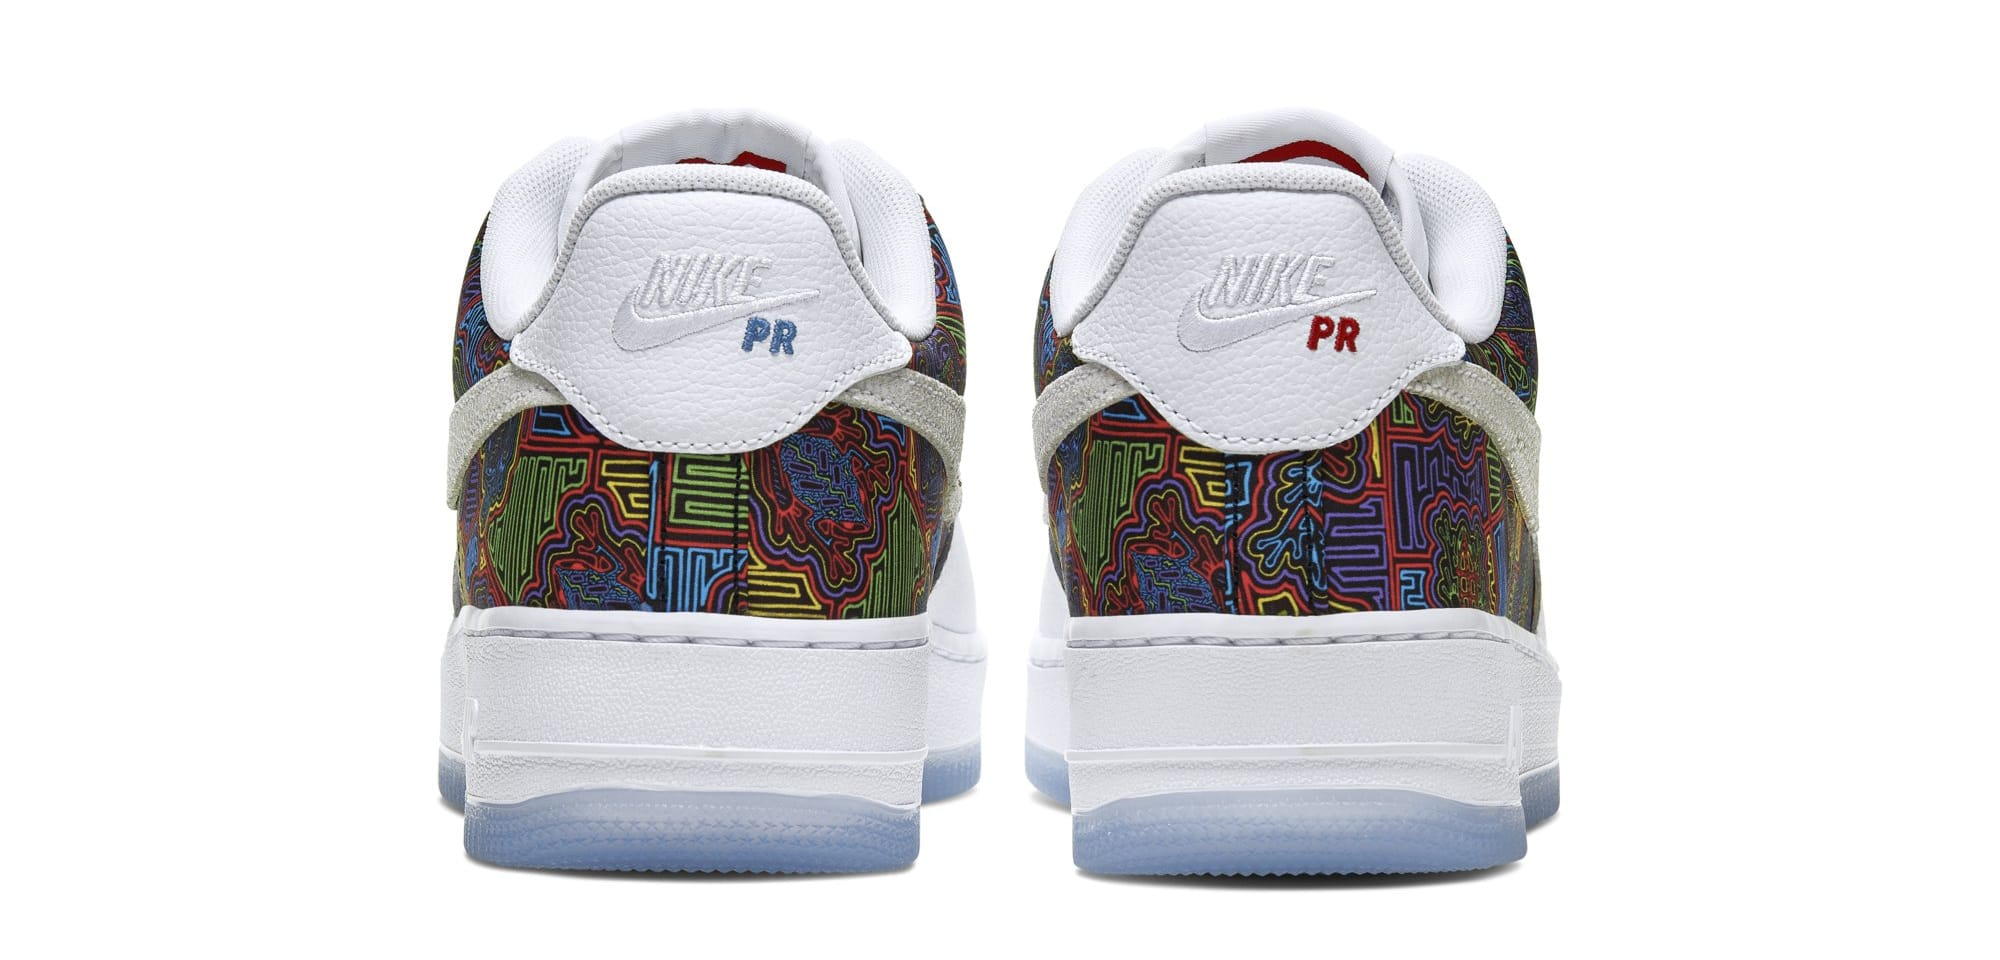 "Nike Air Force 1 Low ""Puerto Rico"" Comes With Colorful Mosaics: Details"